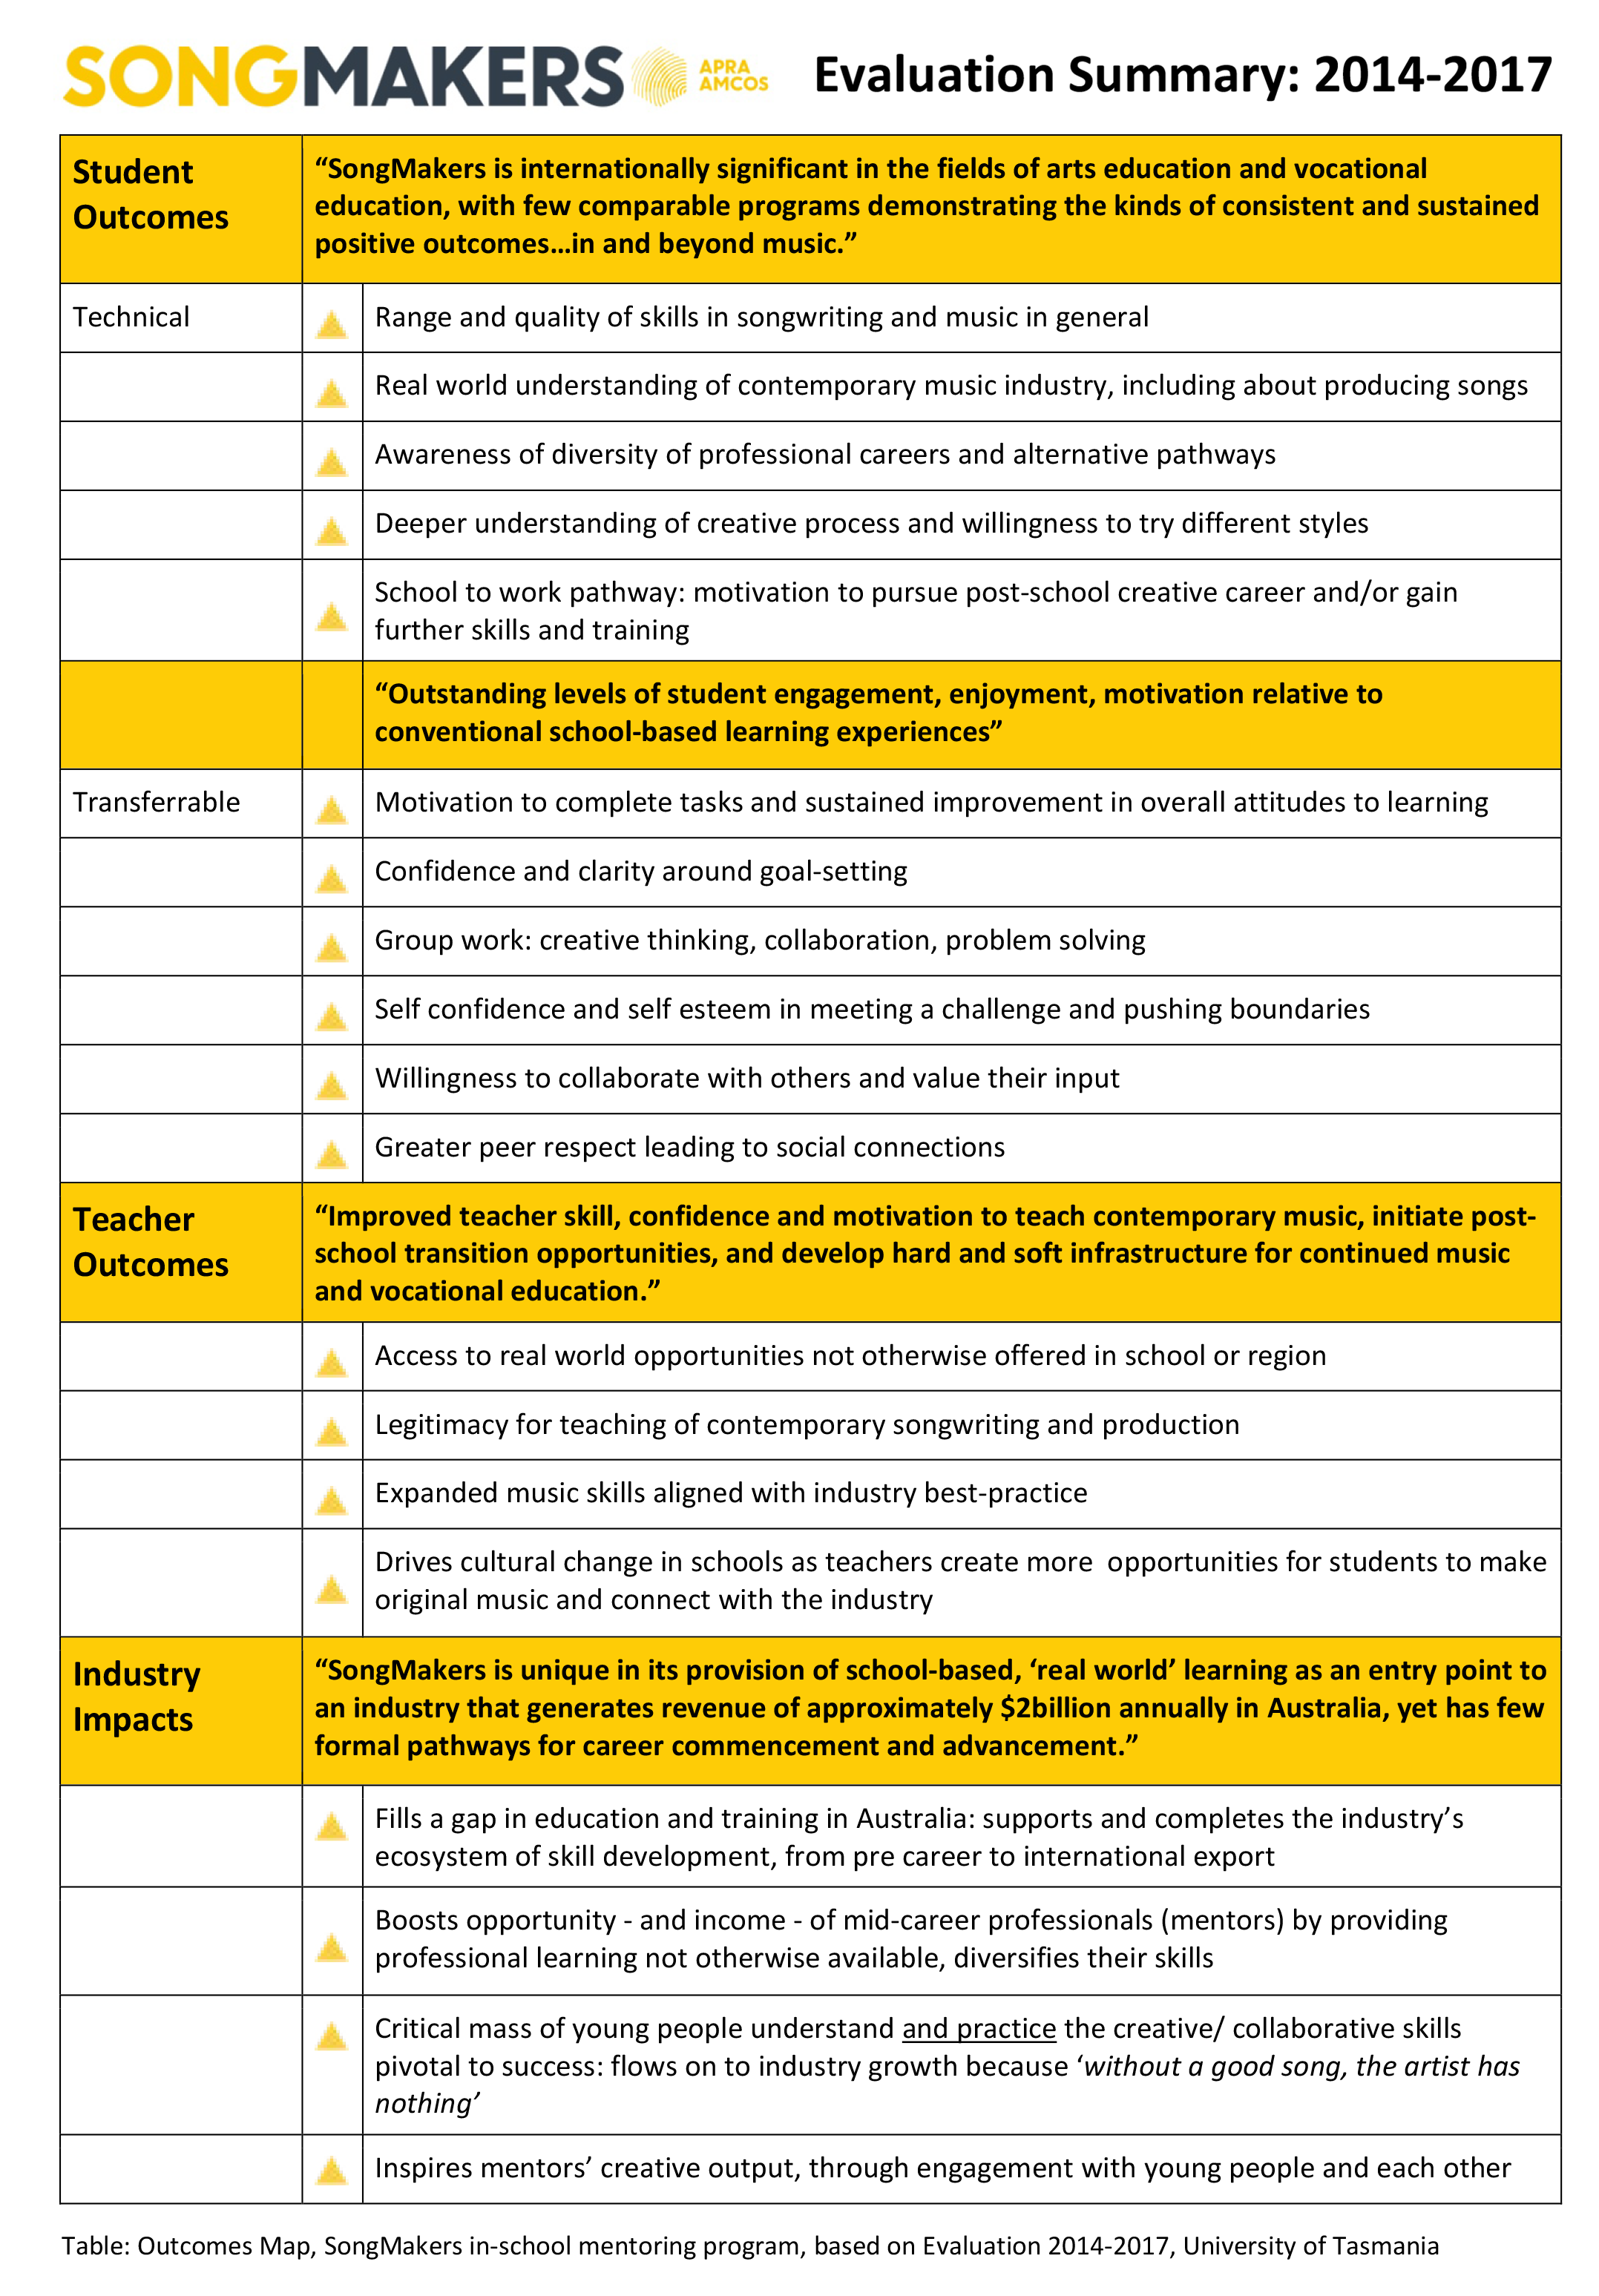 SongMakers-Evaluation-summary-table